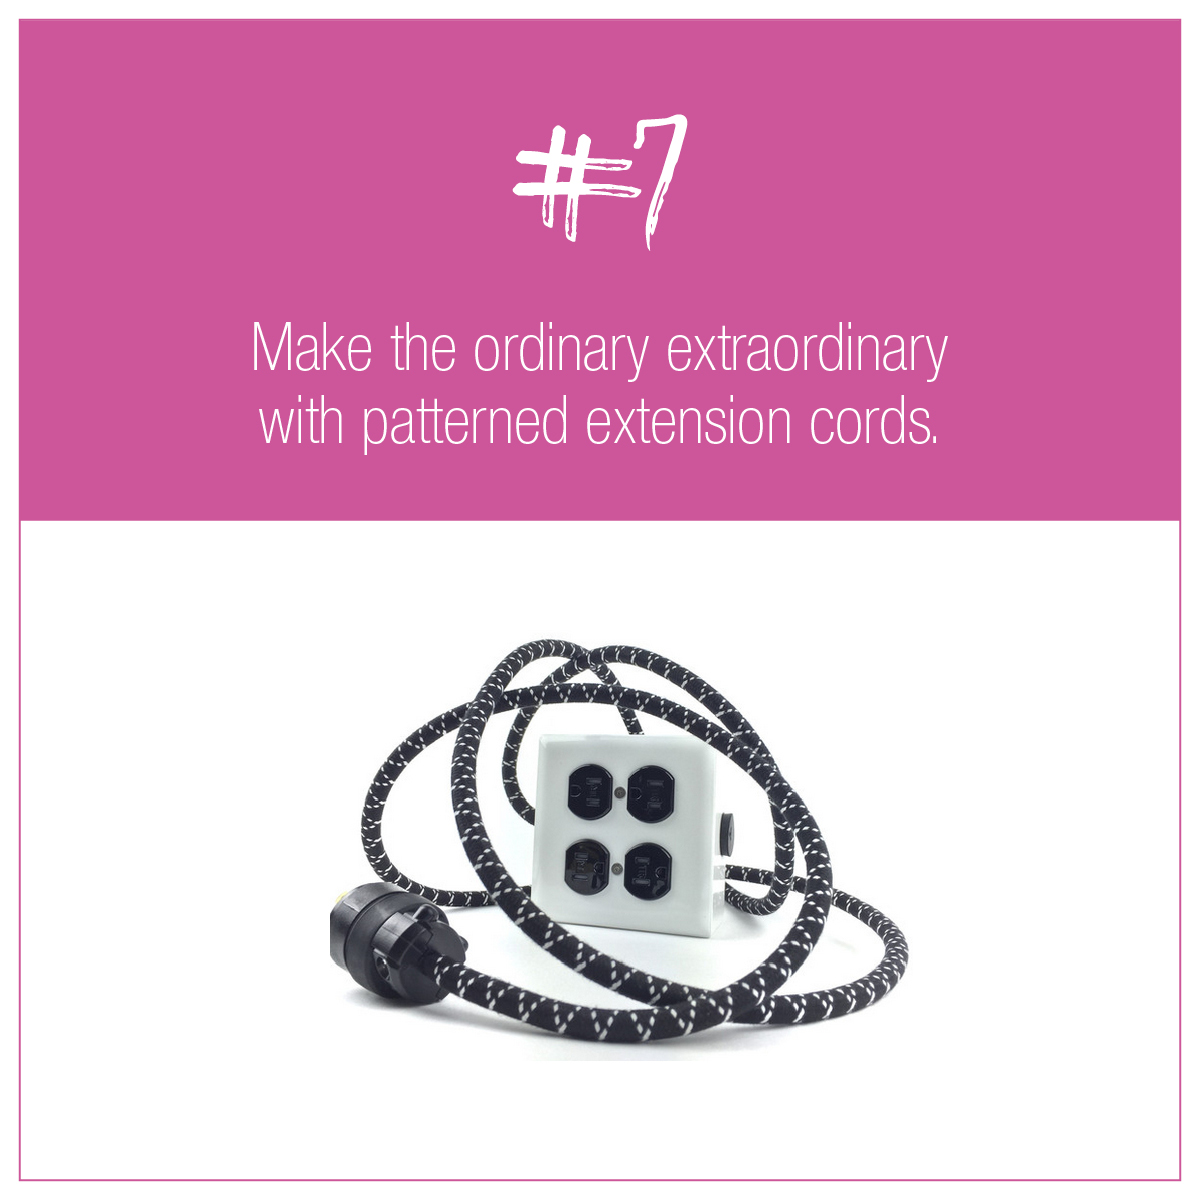 TIP 7: Make the ordinary extraordinary with patterned extension cords.